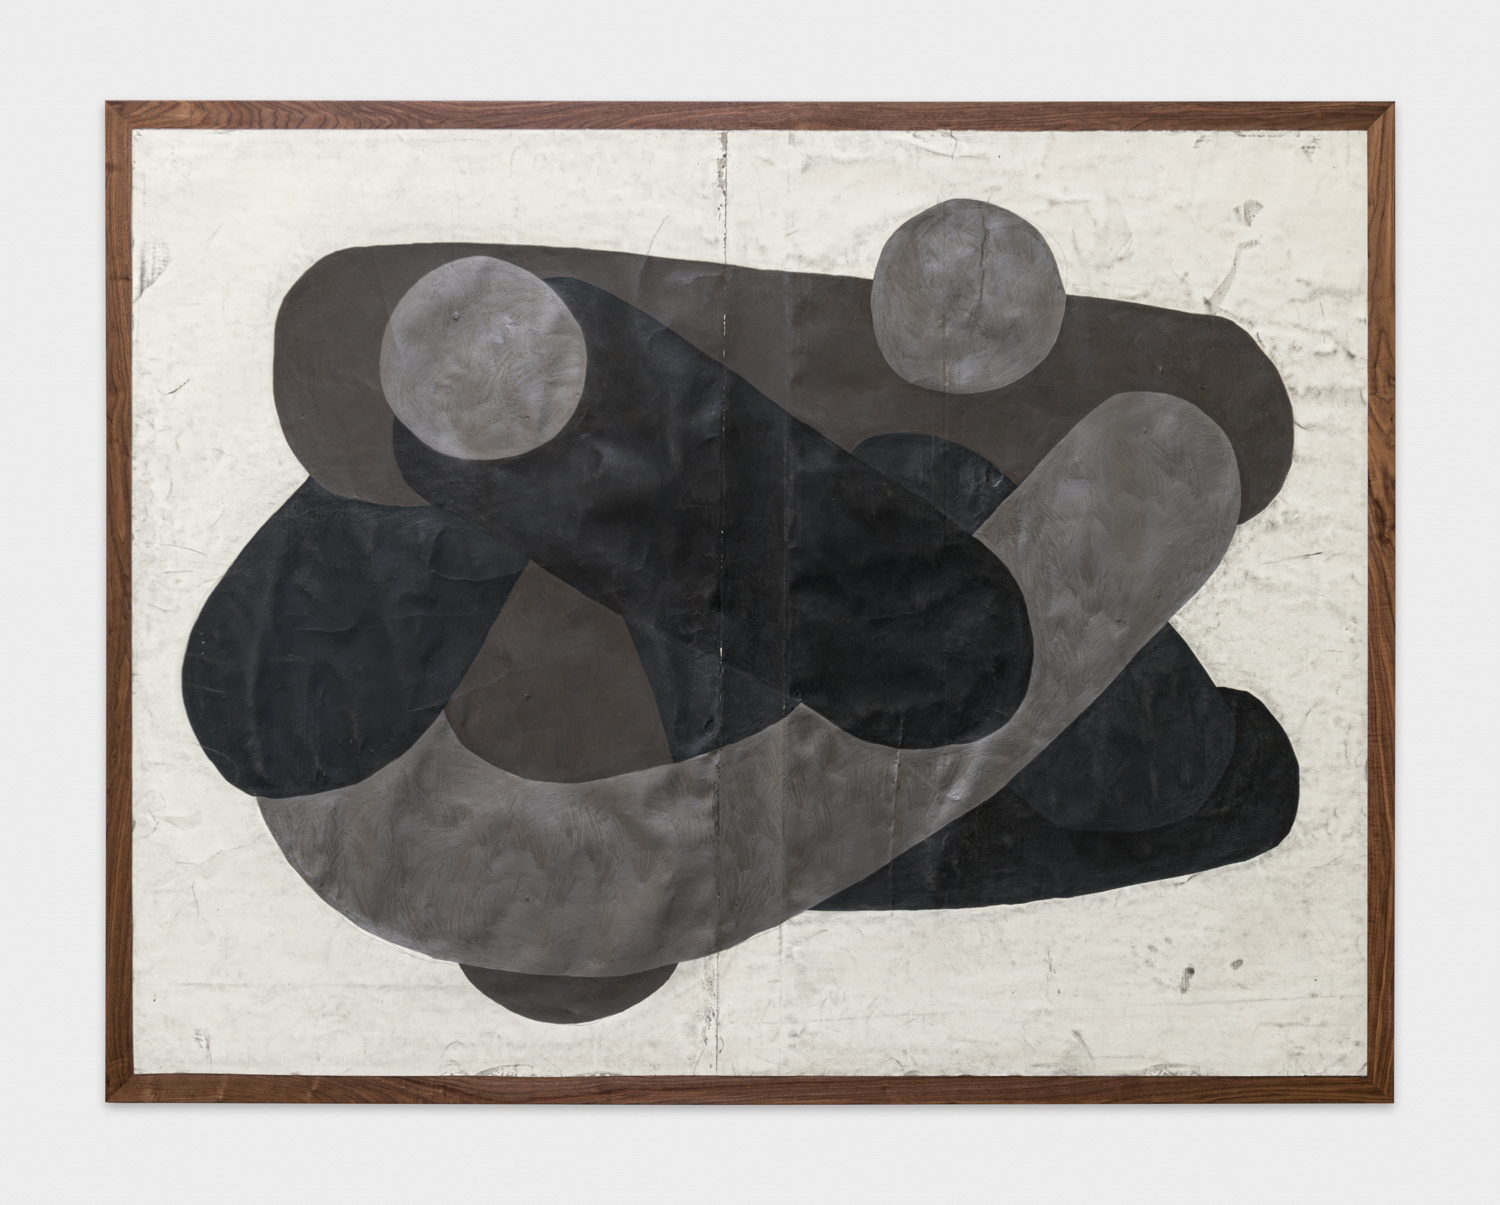 Tony Lewis  Hardy Har Har!  2017 Graphite, pencil, and colored pencil on paper mounted on wood 78h x 100w x 2d in TL433